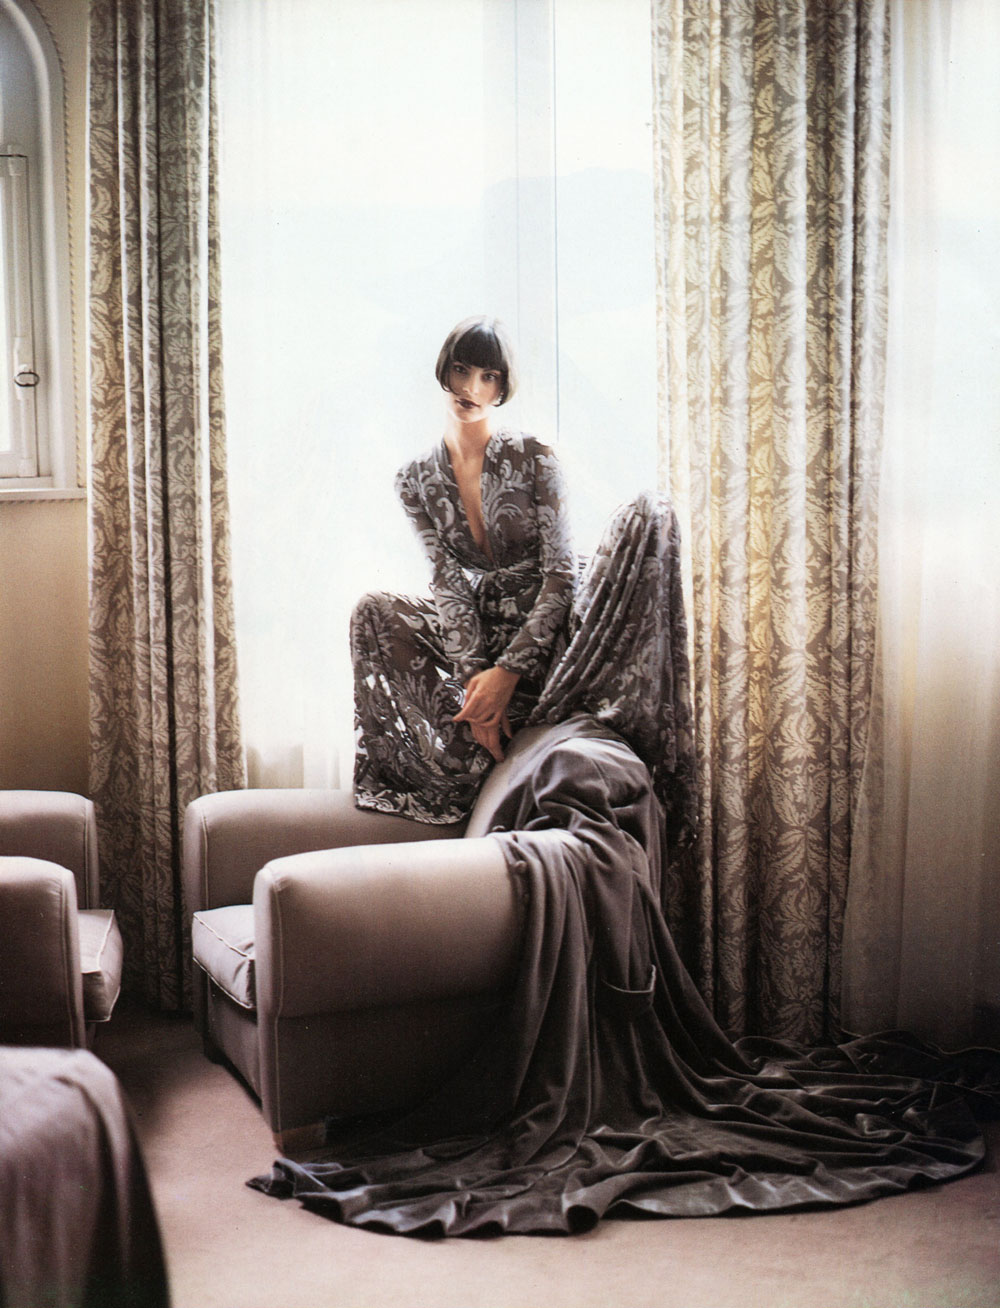 agali Amadei in Vogue Italia September 1993 (photography: Walter Chin, styling: Anna Dello Russo)